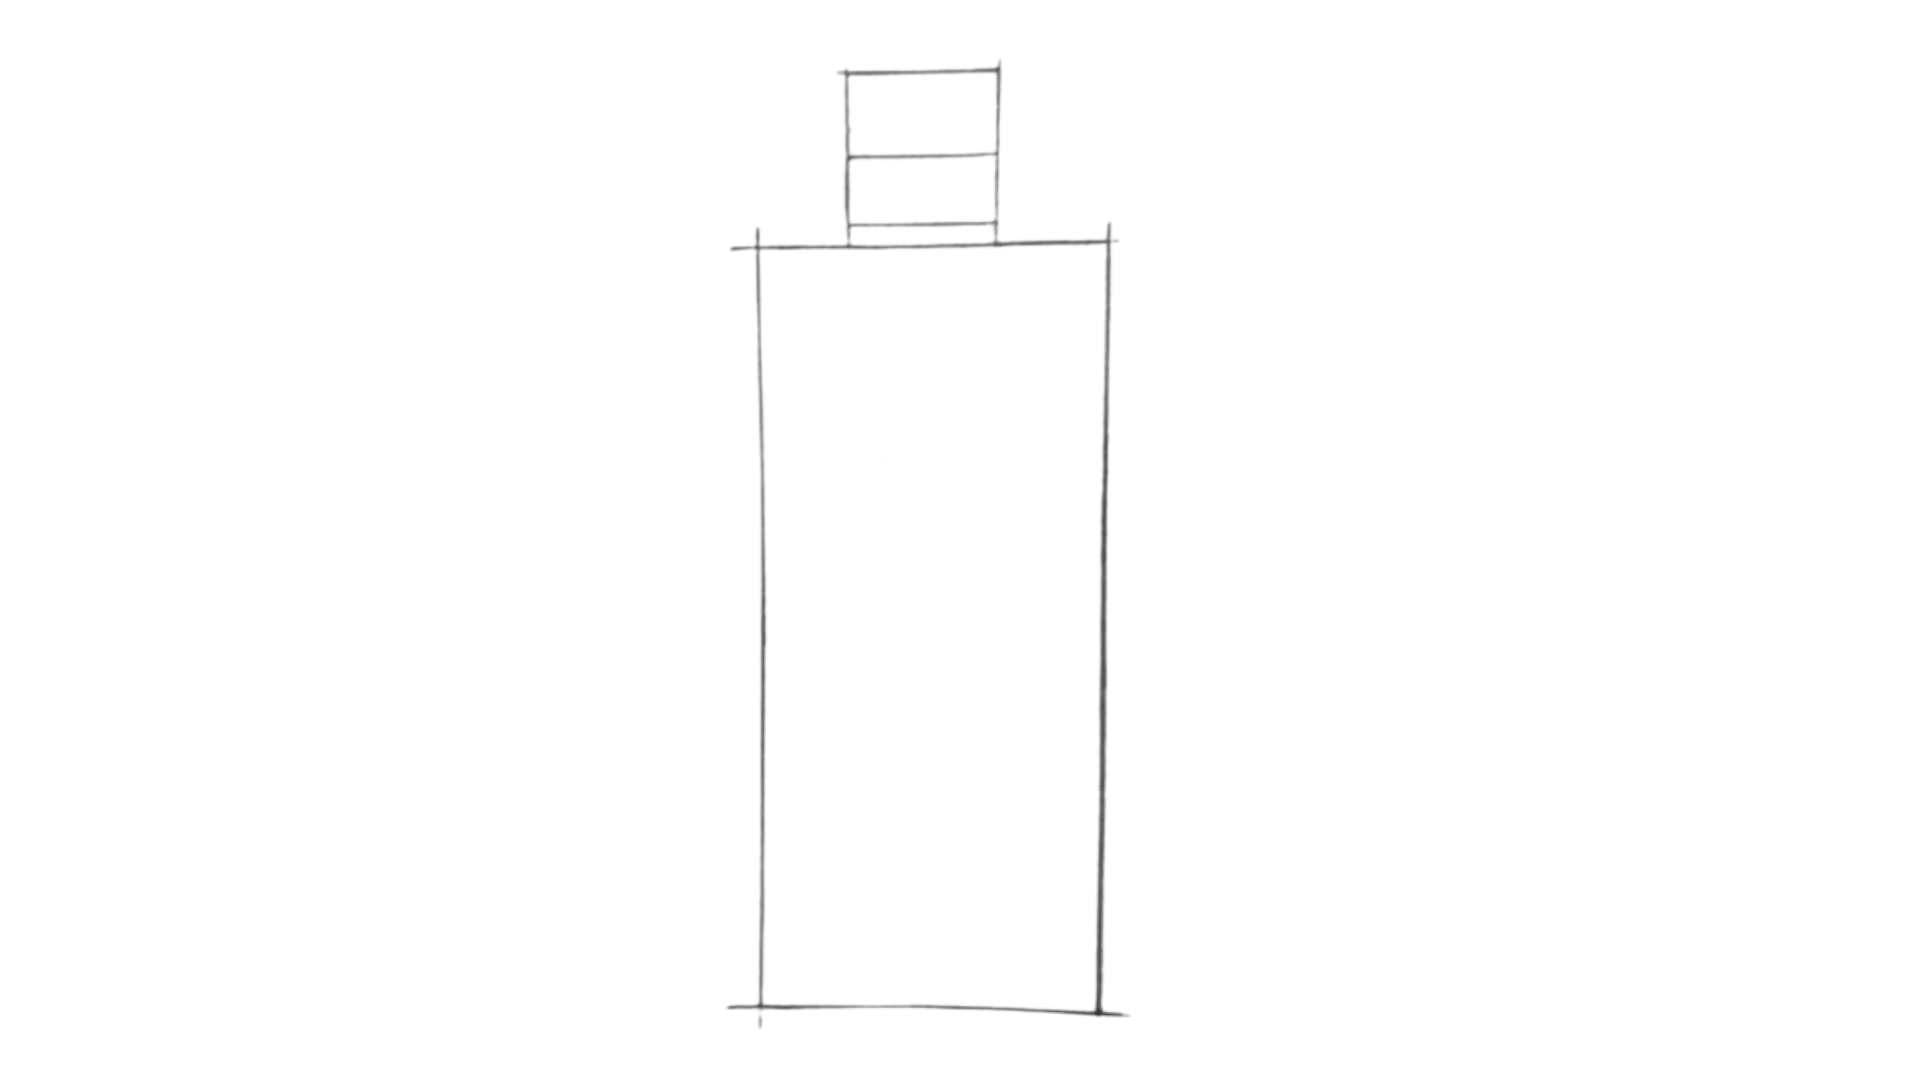 How To Draw a Bottle Step 1